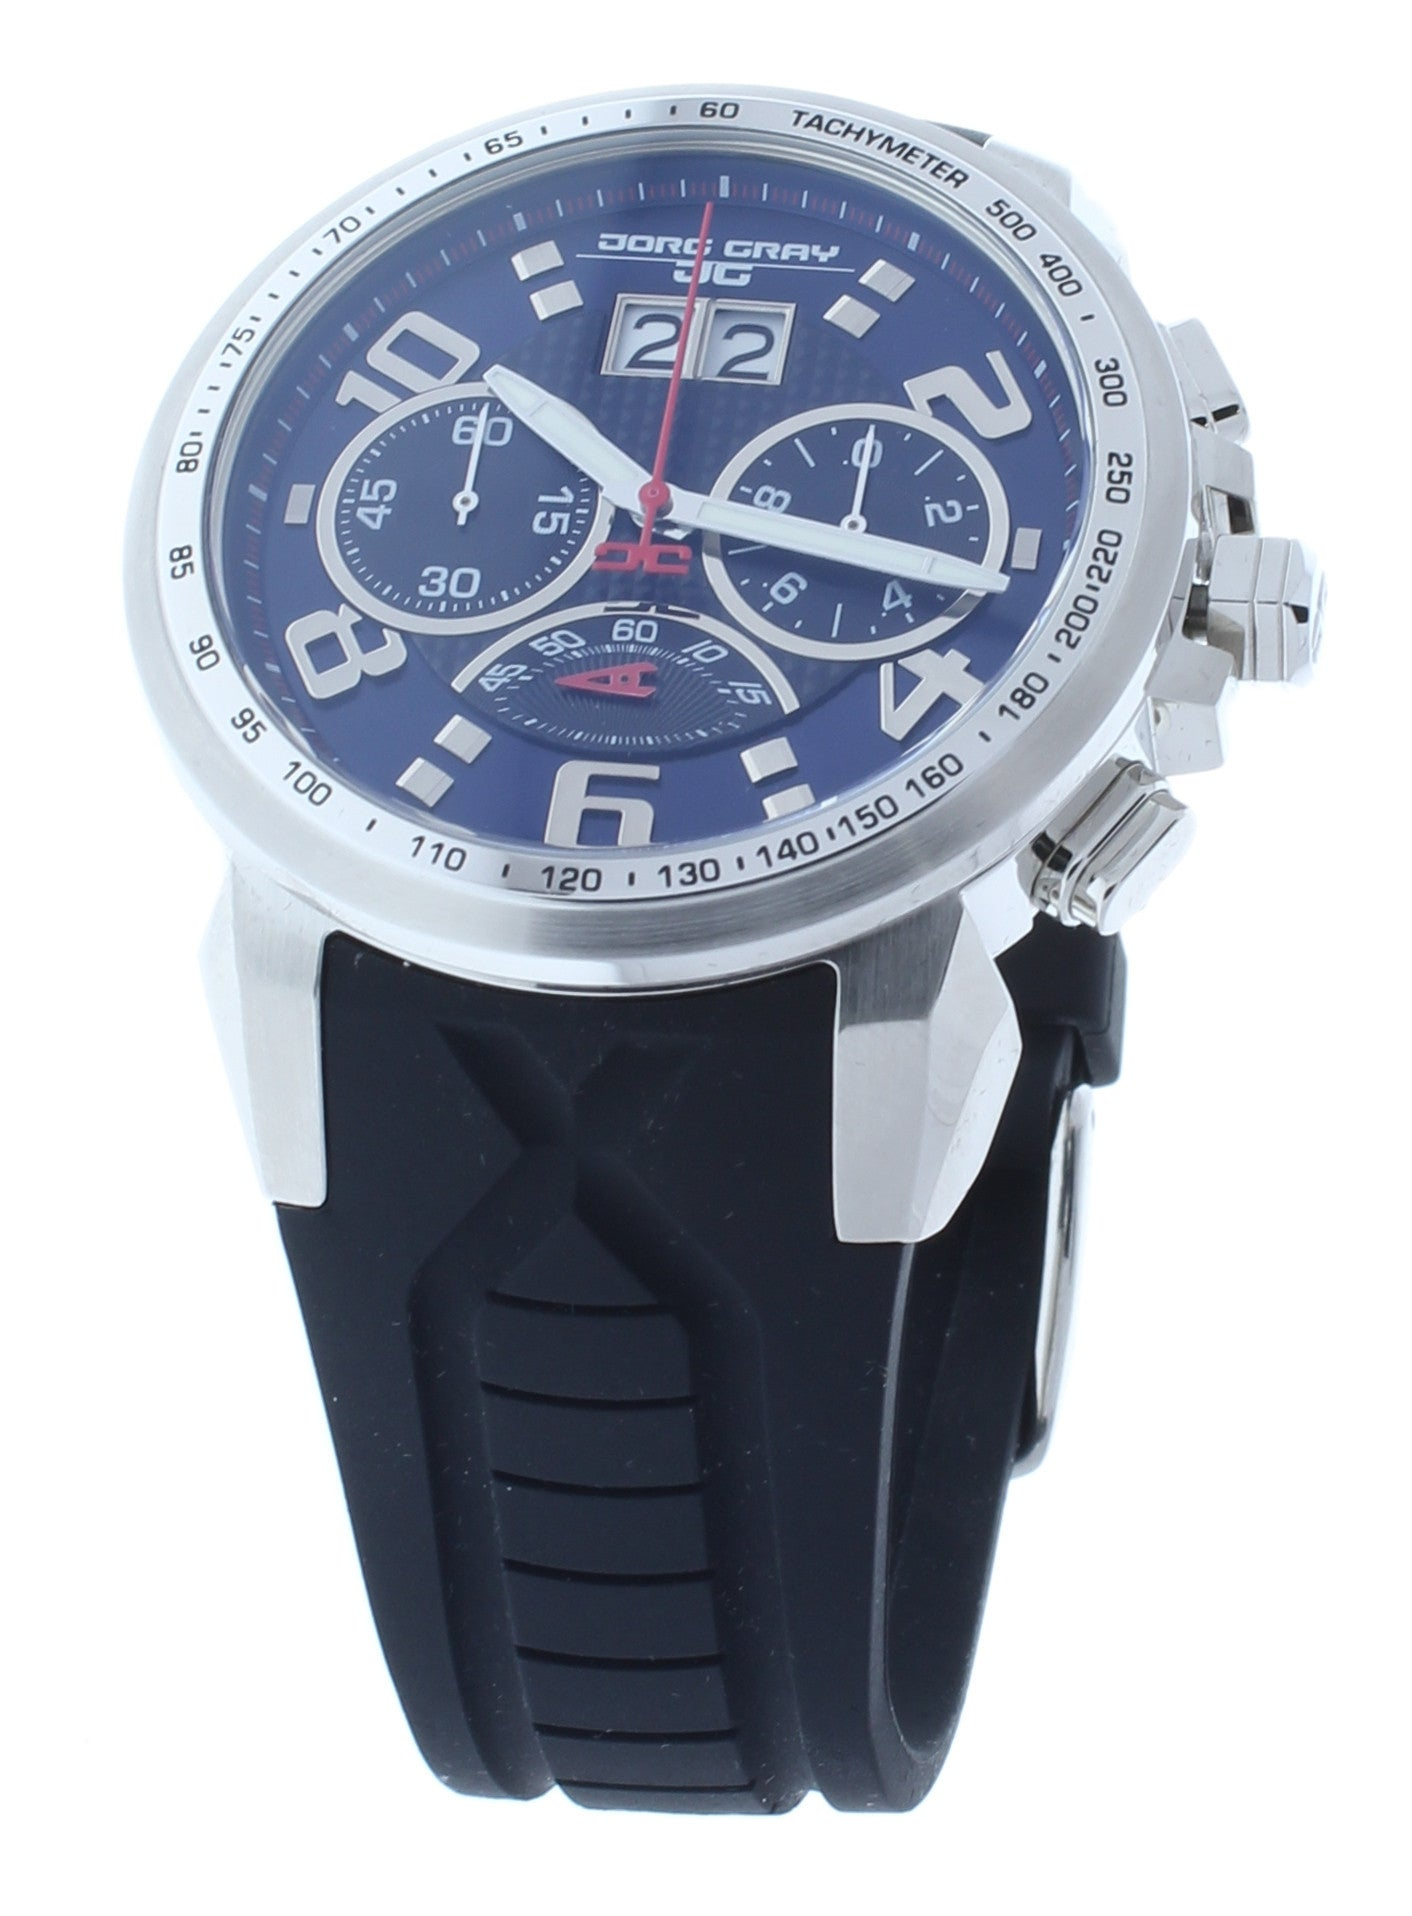 Jorg Gray JG5600-23 Men's Watch Chronograph Blue Dial With Integrated Black Silicone Strap